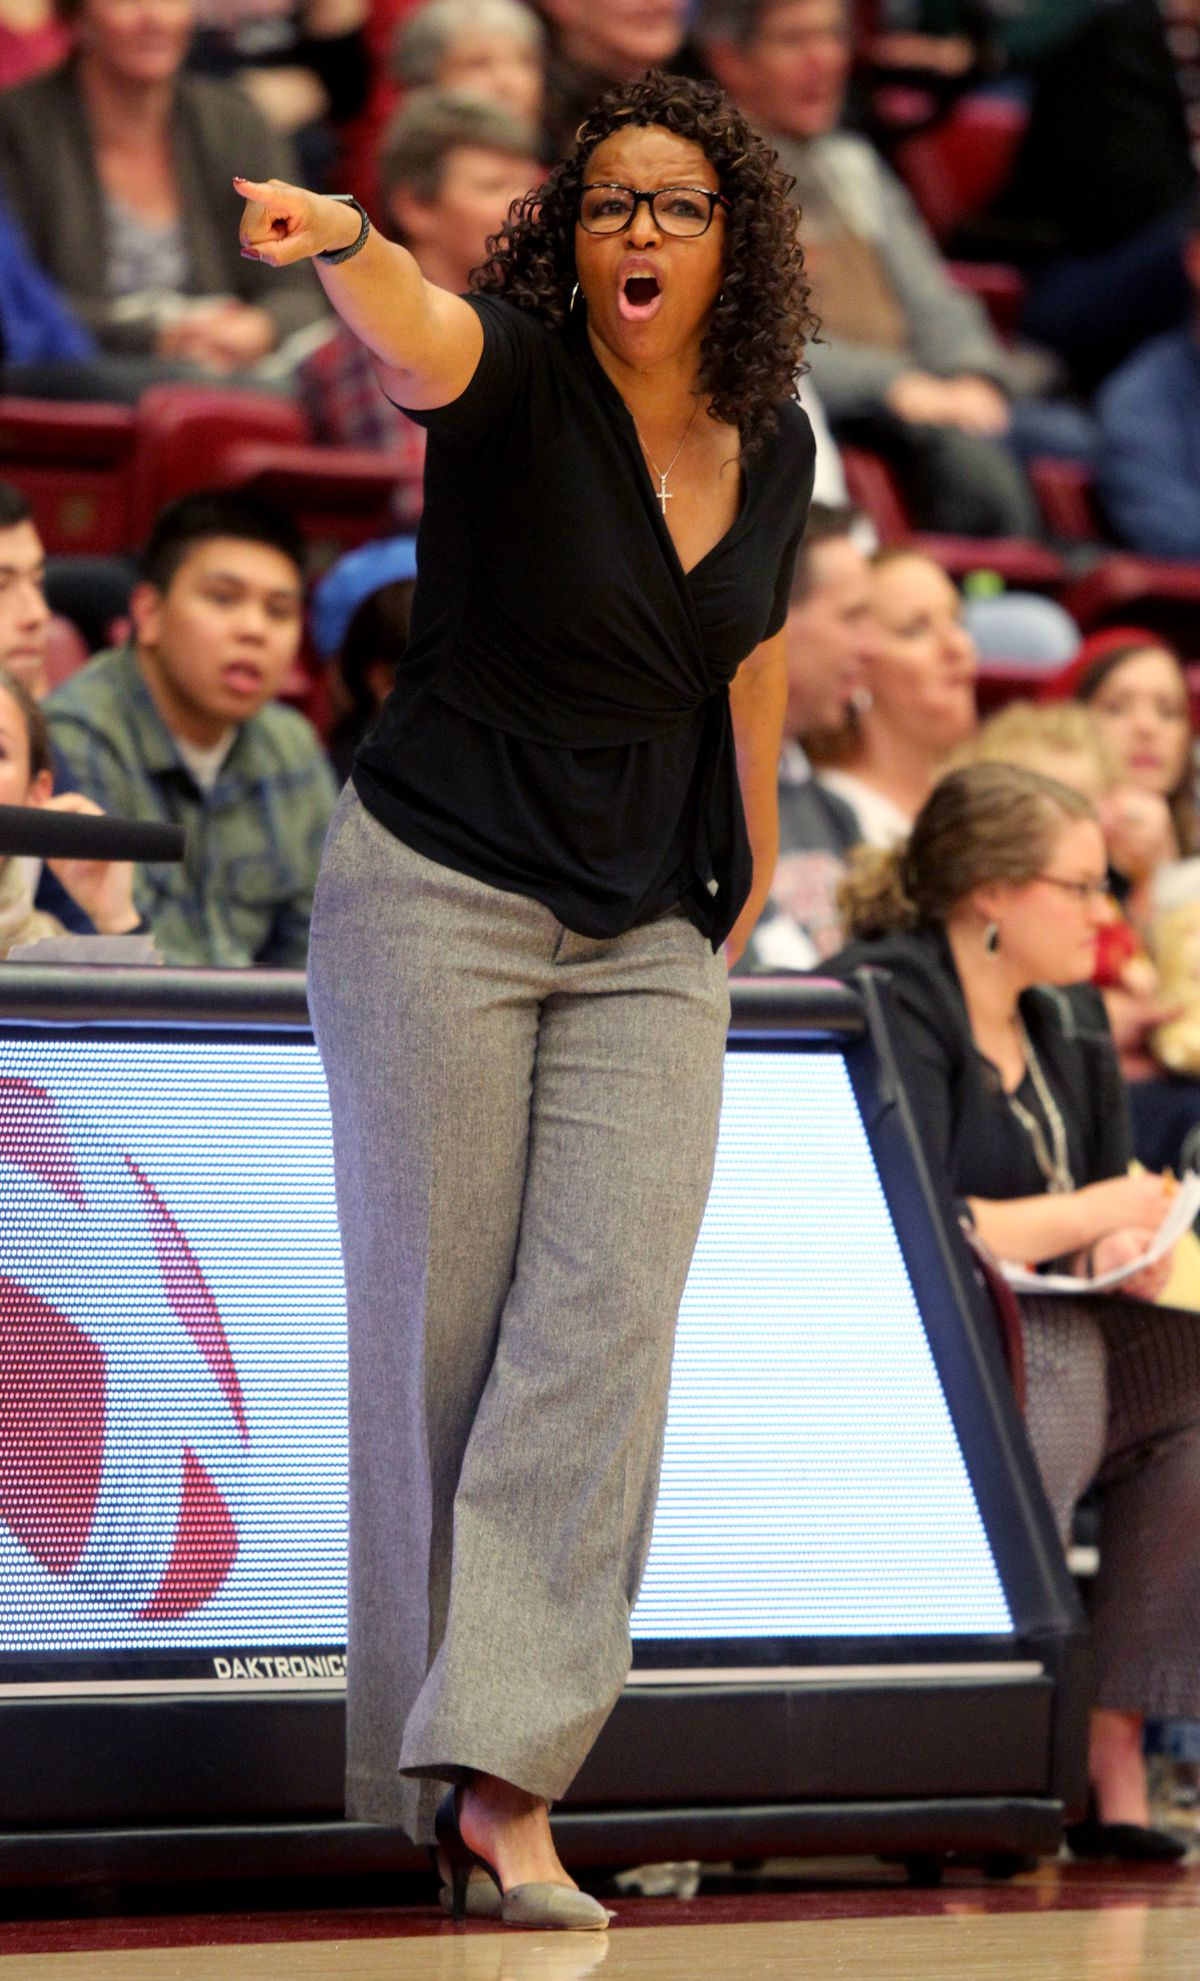 USC head coach Cynthia Cooper-Dyke communicates with her players in the third period of their game against Stanford at Maples Pavilion in Stanford, Calif., on Friday, Feb. 3, 2017. (Anda Chu/Bay Area News Group)